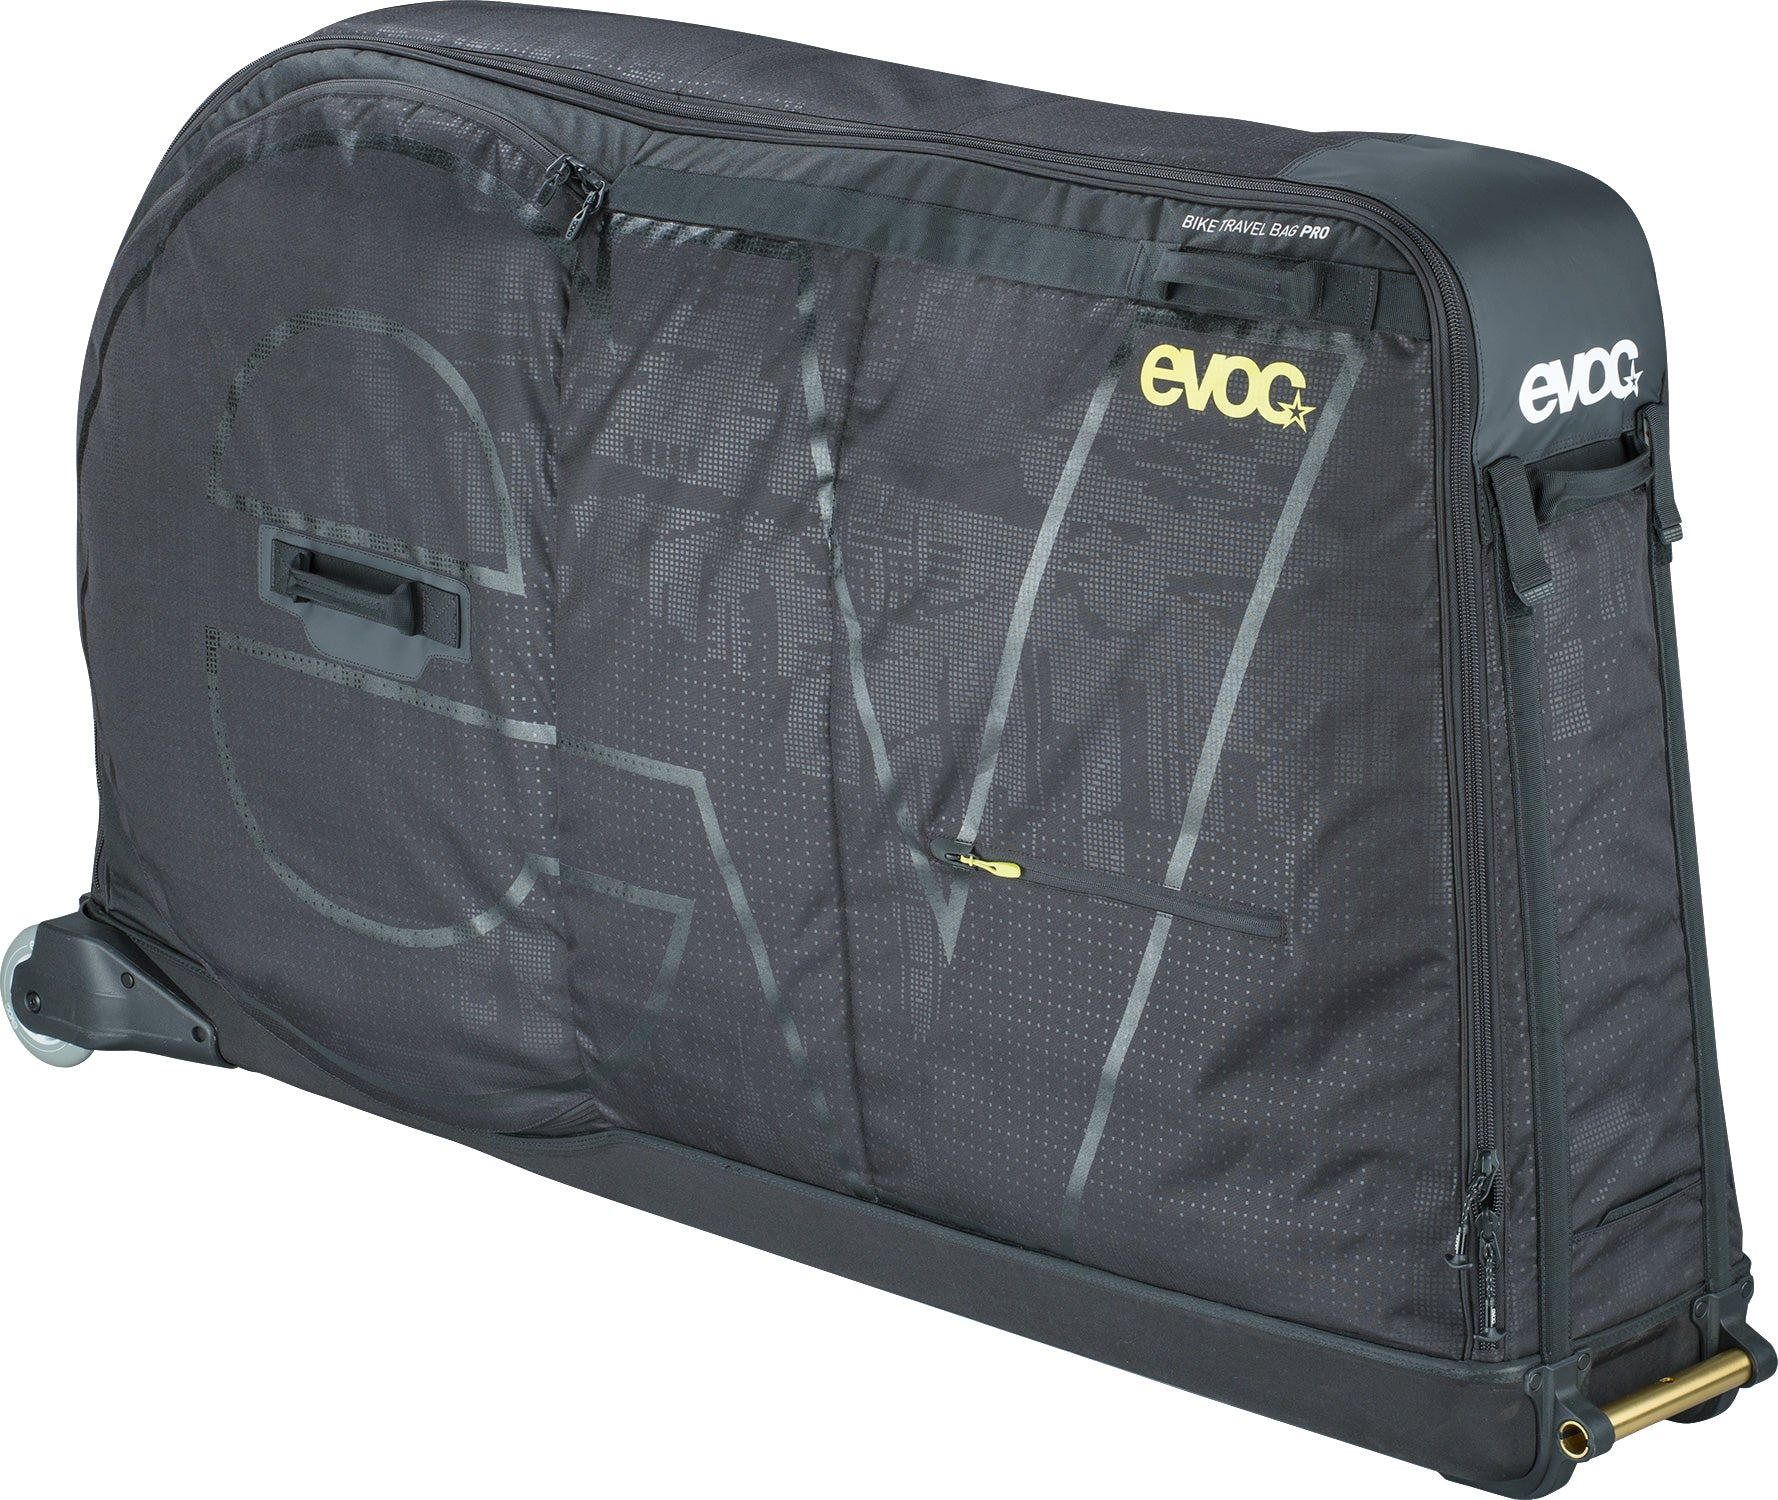 Maleta Evoc Bike Travel Bag Pro Black